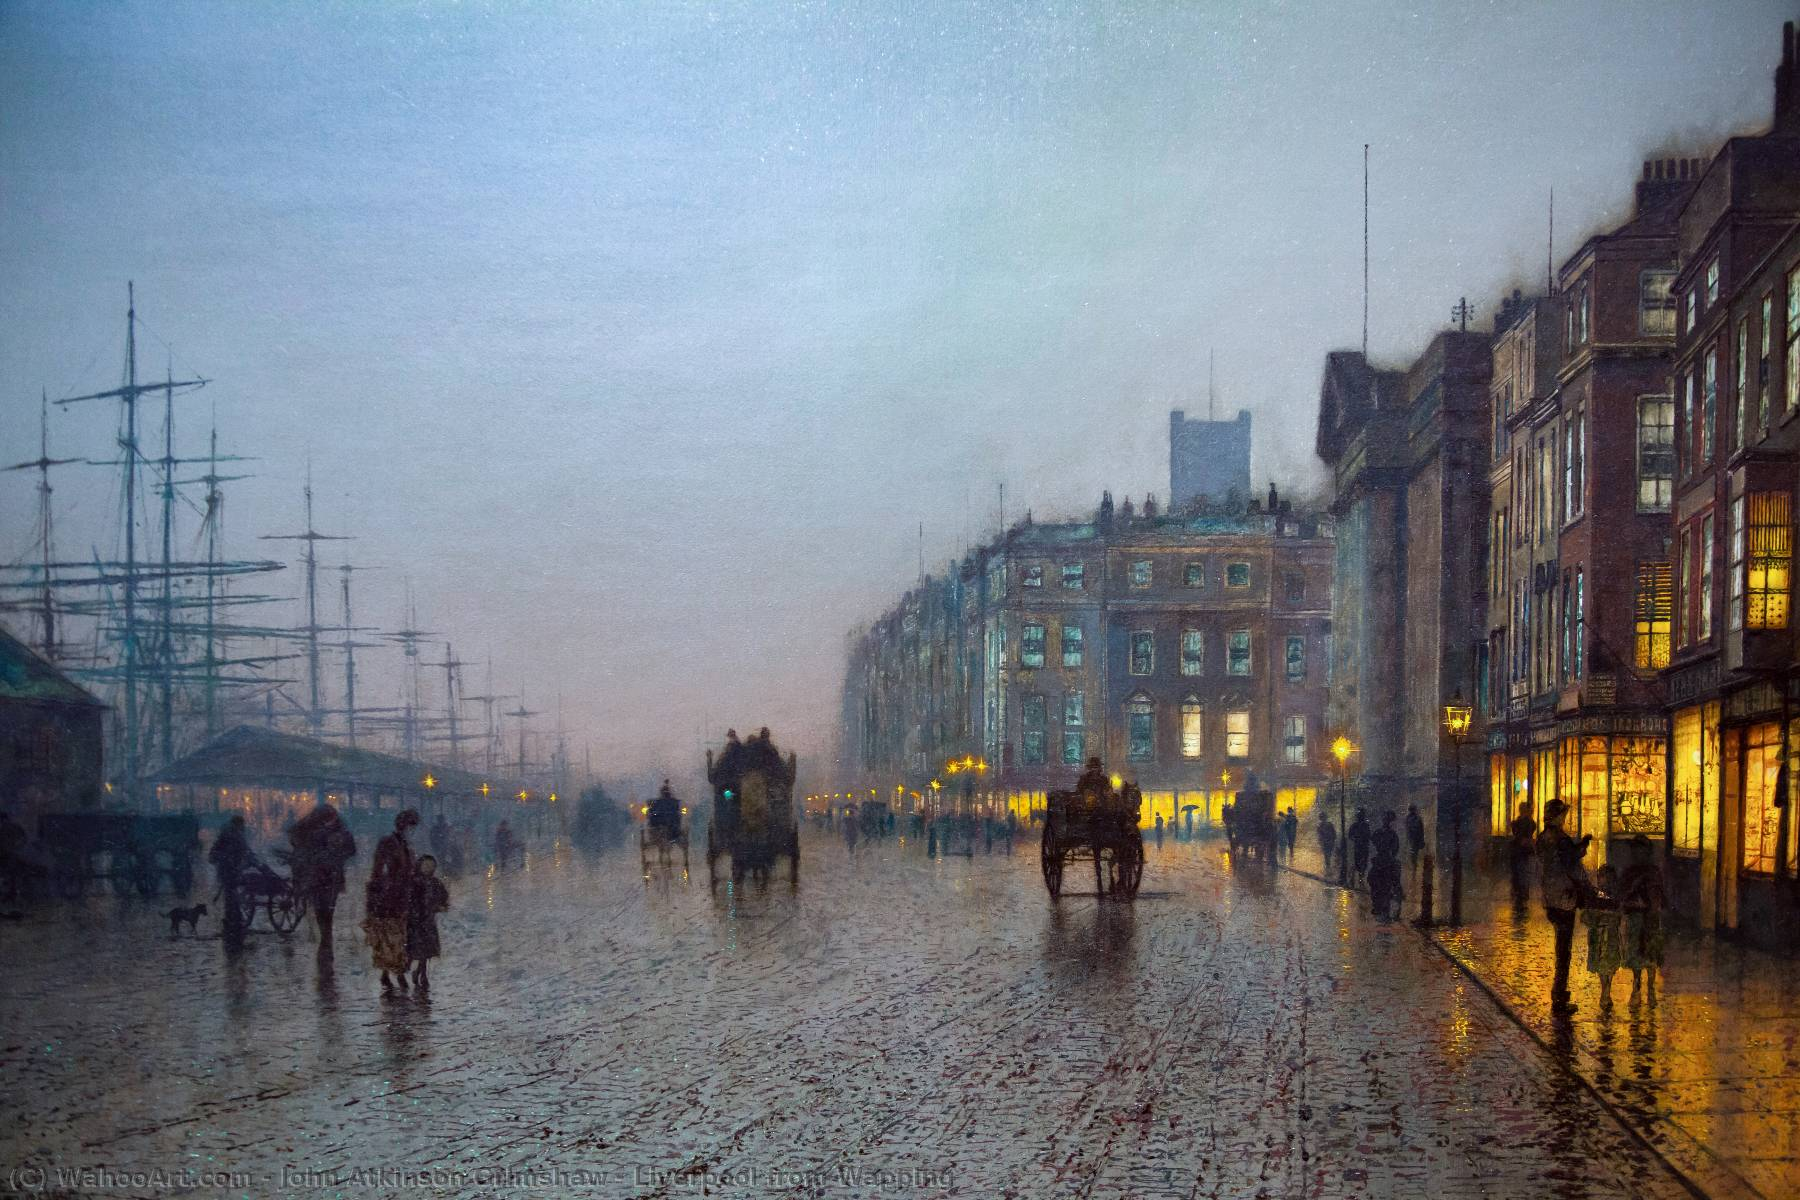 Achat Reproductions D'œuvres D'art | Liverpool de Wapping de John Atkinson Grimshaw | Most-Famous-Paintings.com